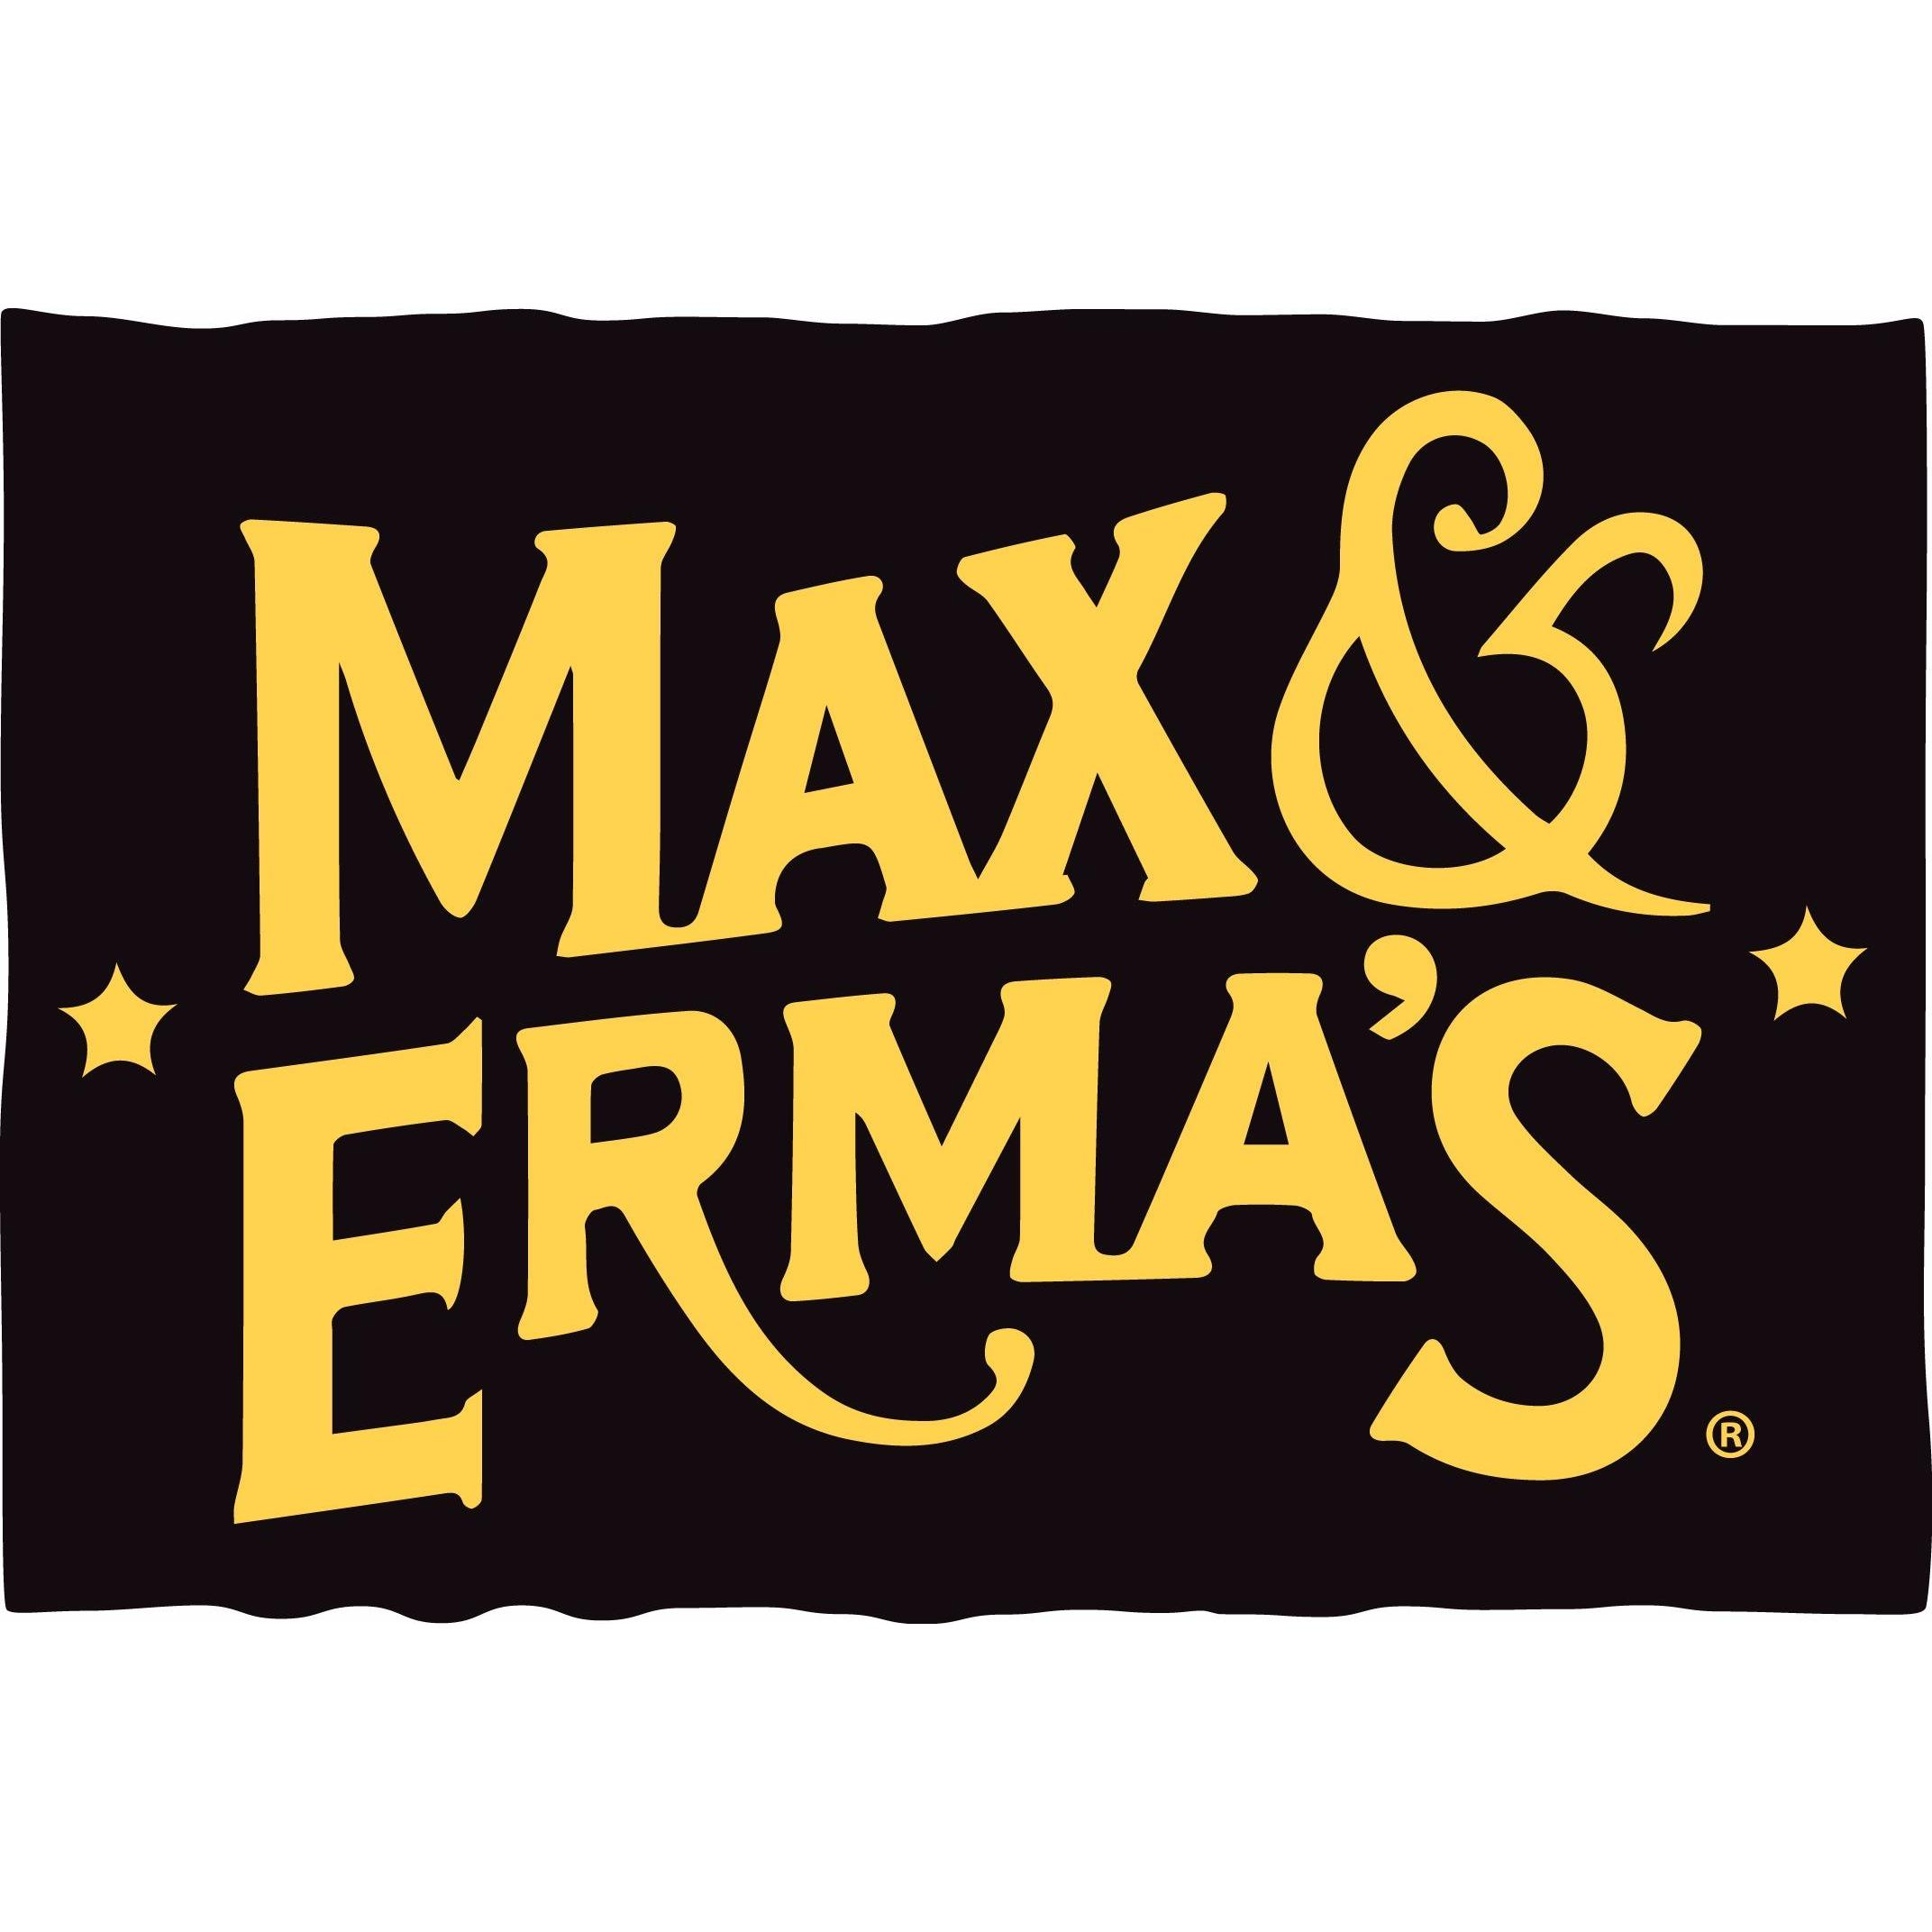 Whether Max & Erma's is your favorite restaurant or you've been meaning to give it a try, these 8 coupons will make sure you get a great deal on your meal. You'll find all of the latest offers available in December, with new coupons being added all the time.